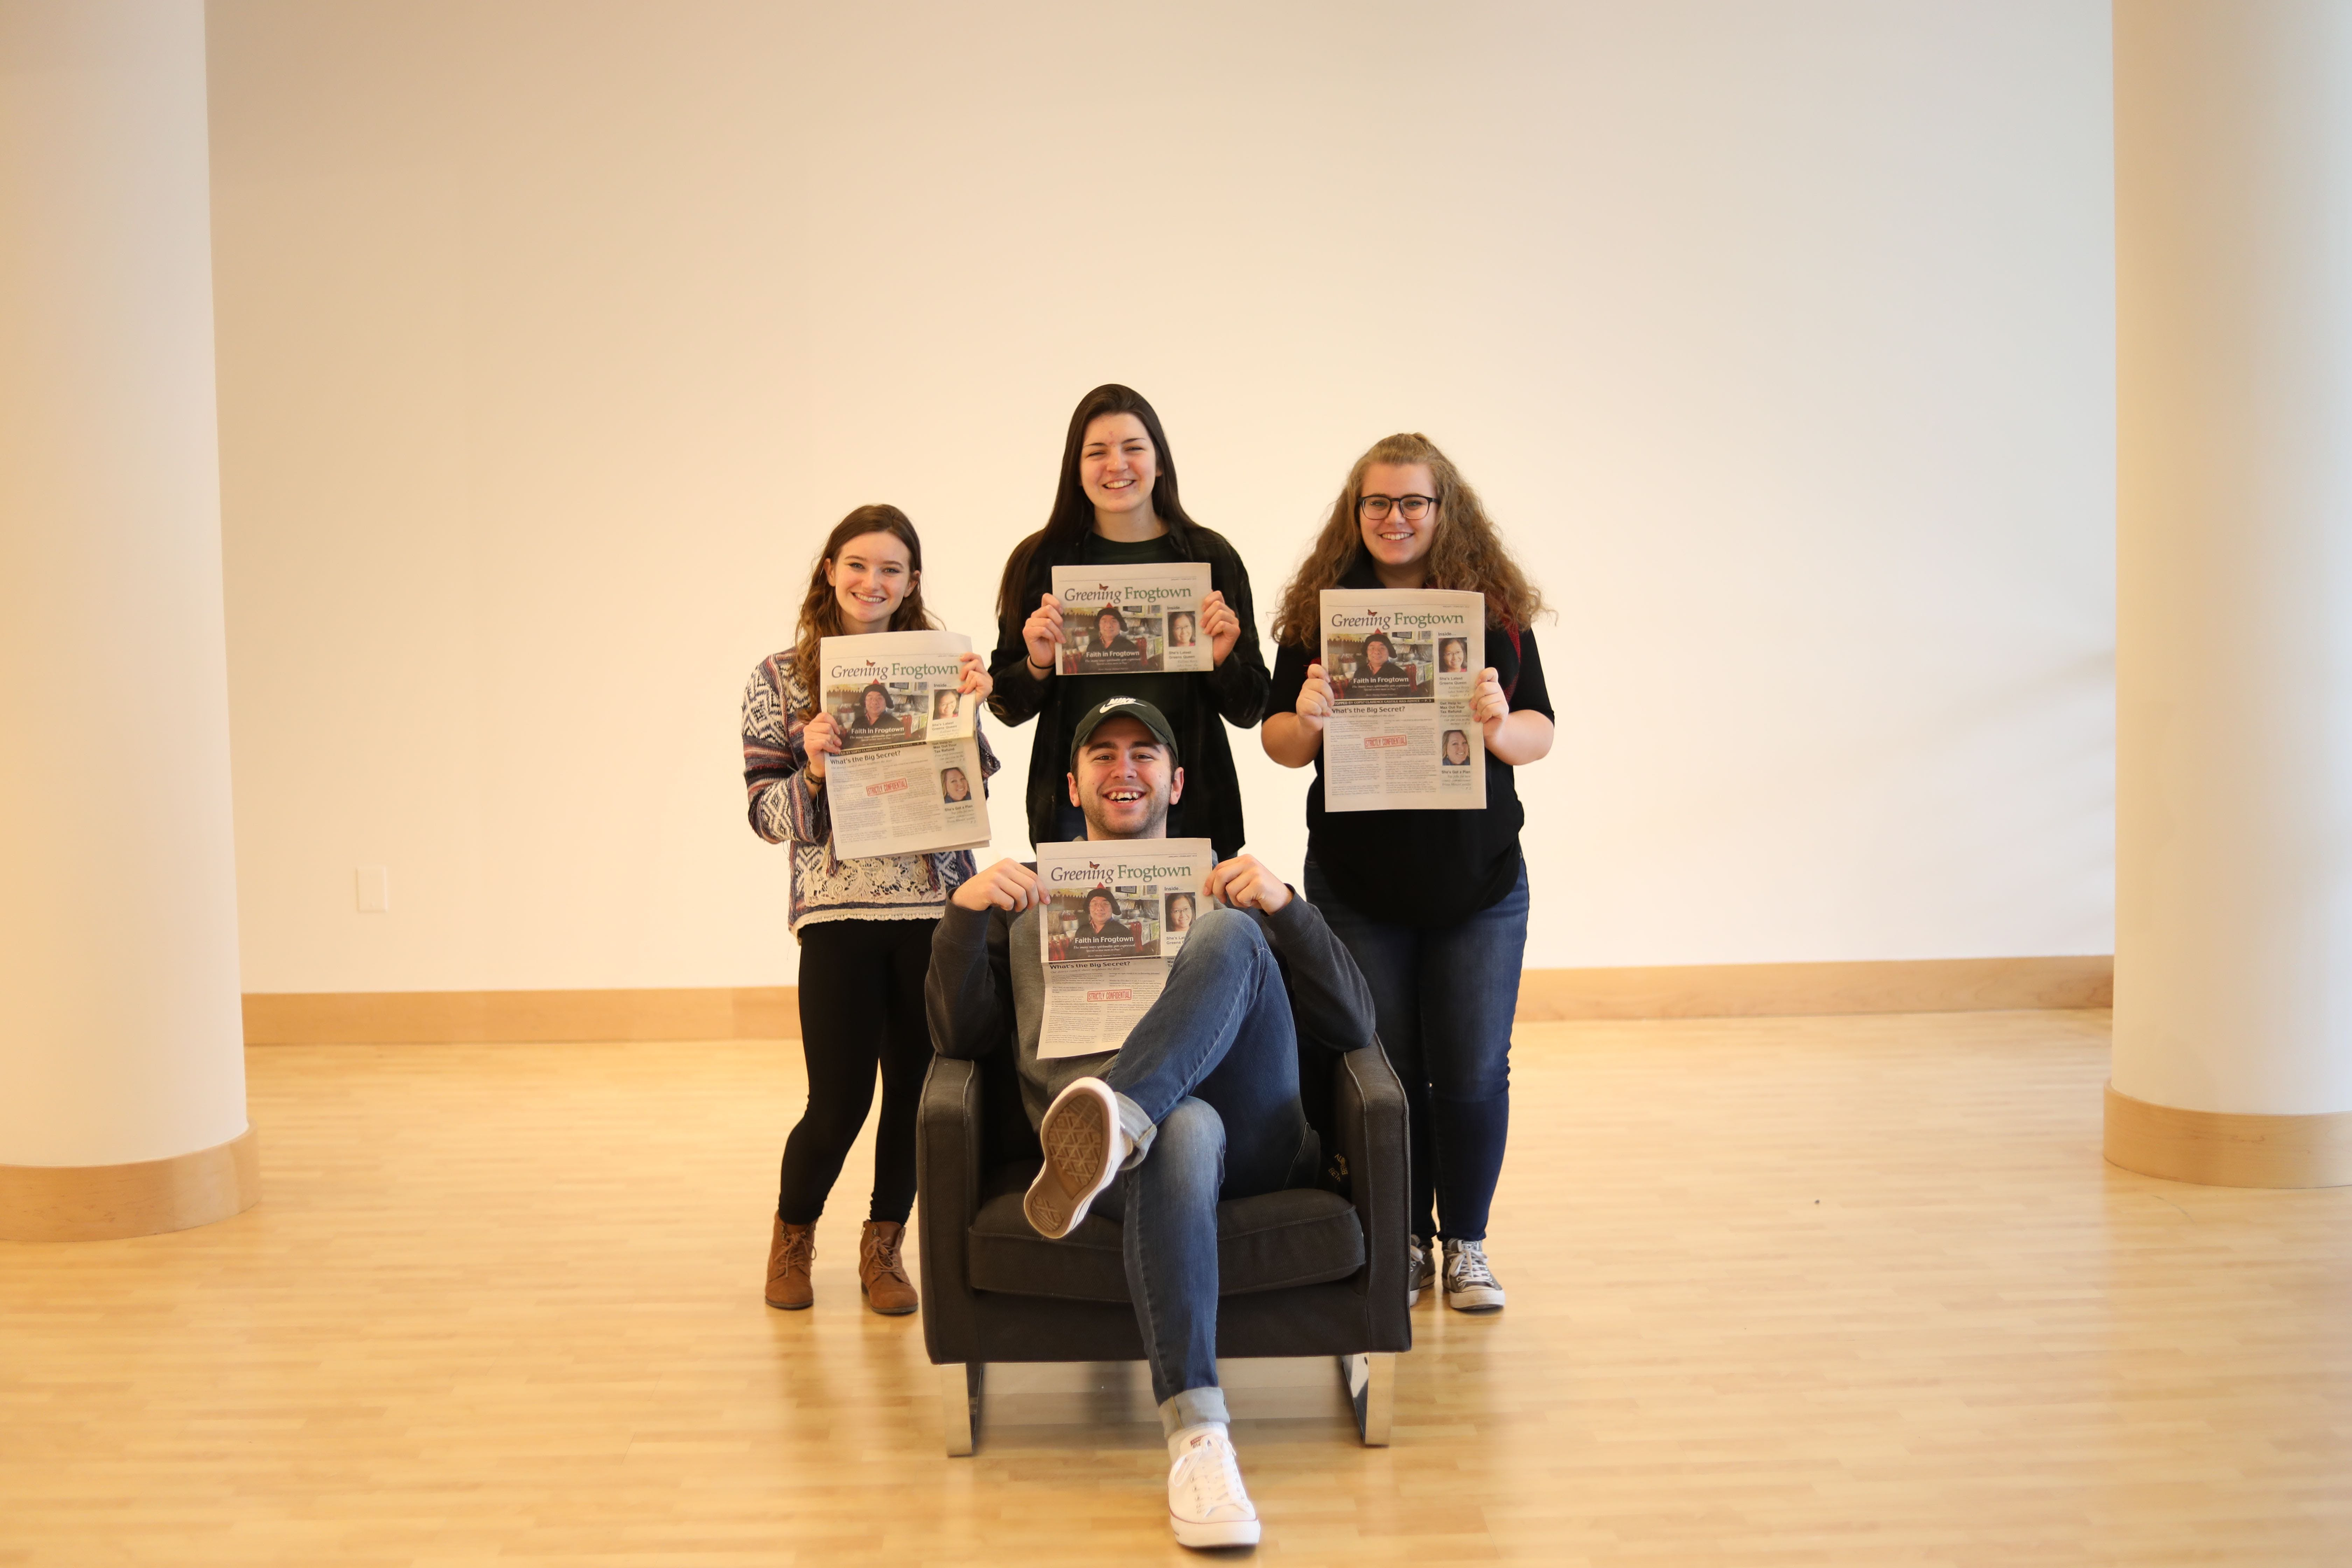 Journalism students get hands-on experience at Bethel University.